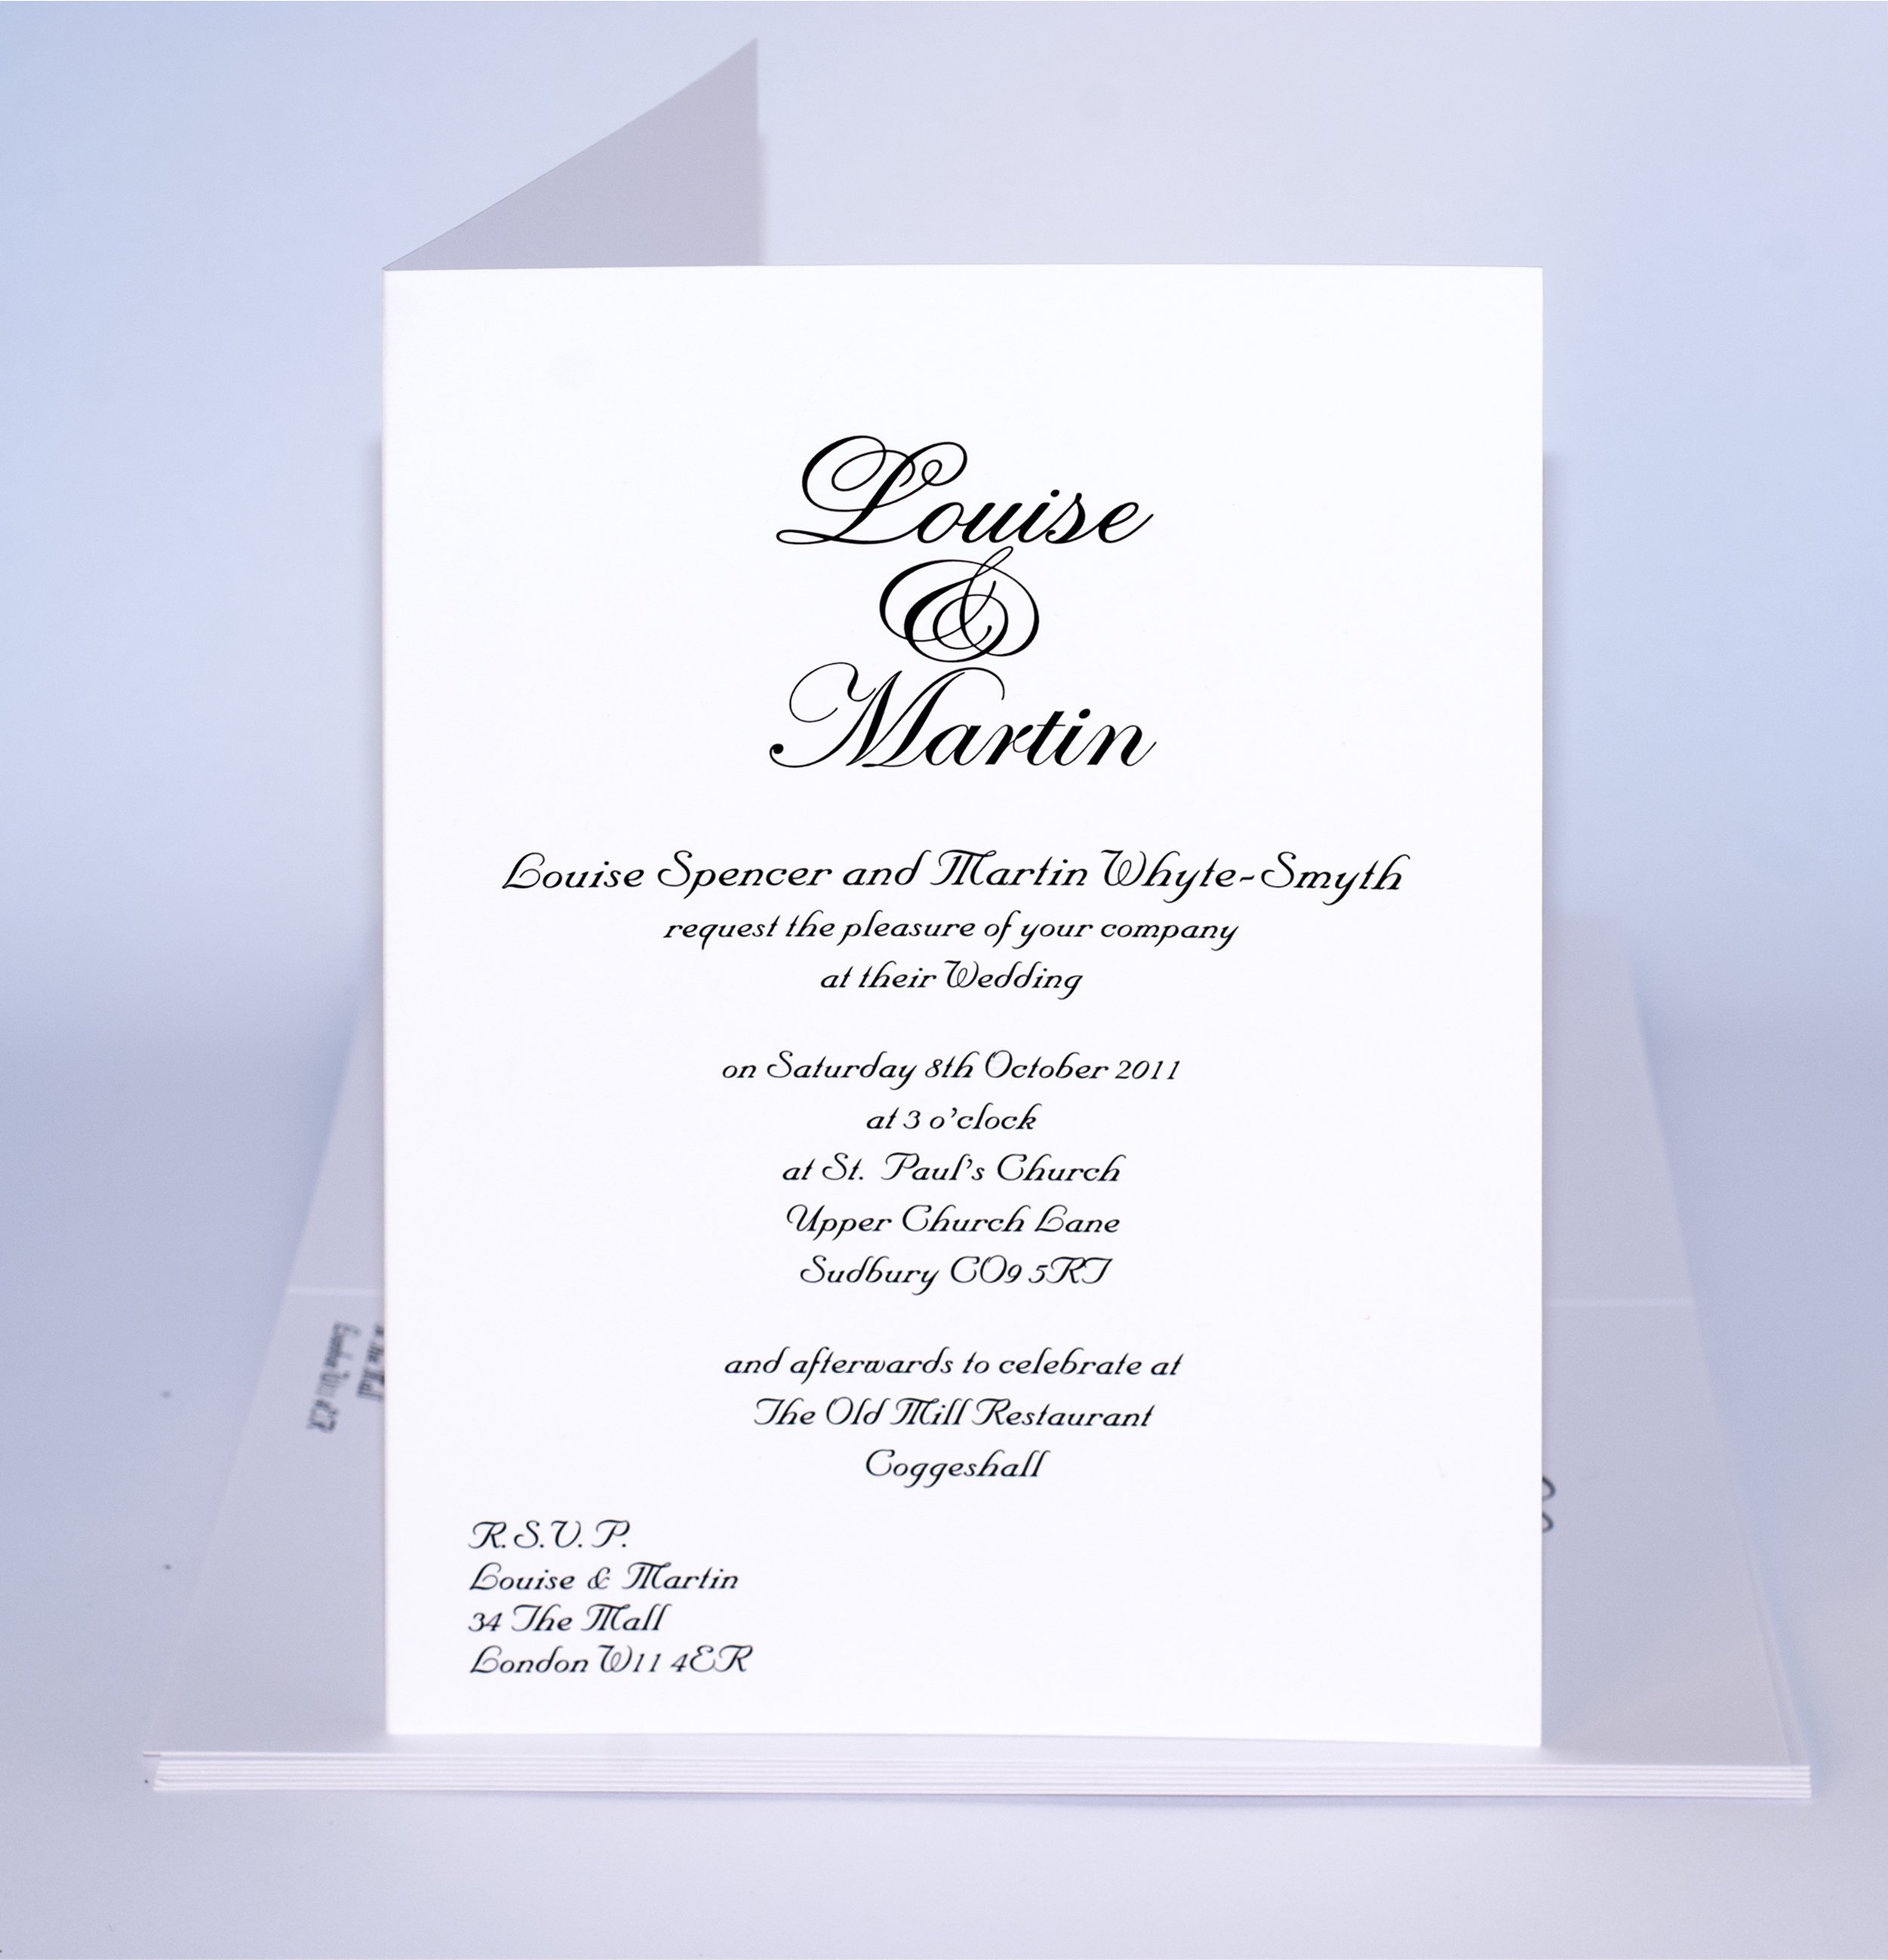 Sample Invitations For Wedding: Sample Wedding Invitations Templates